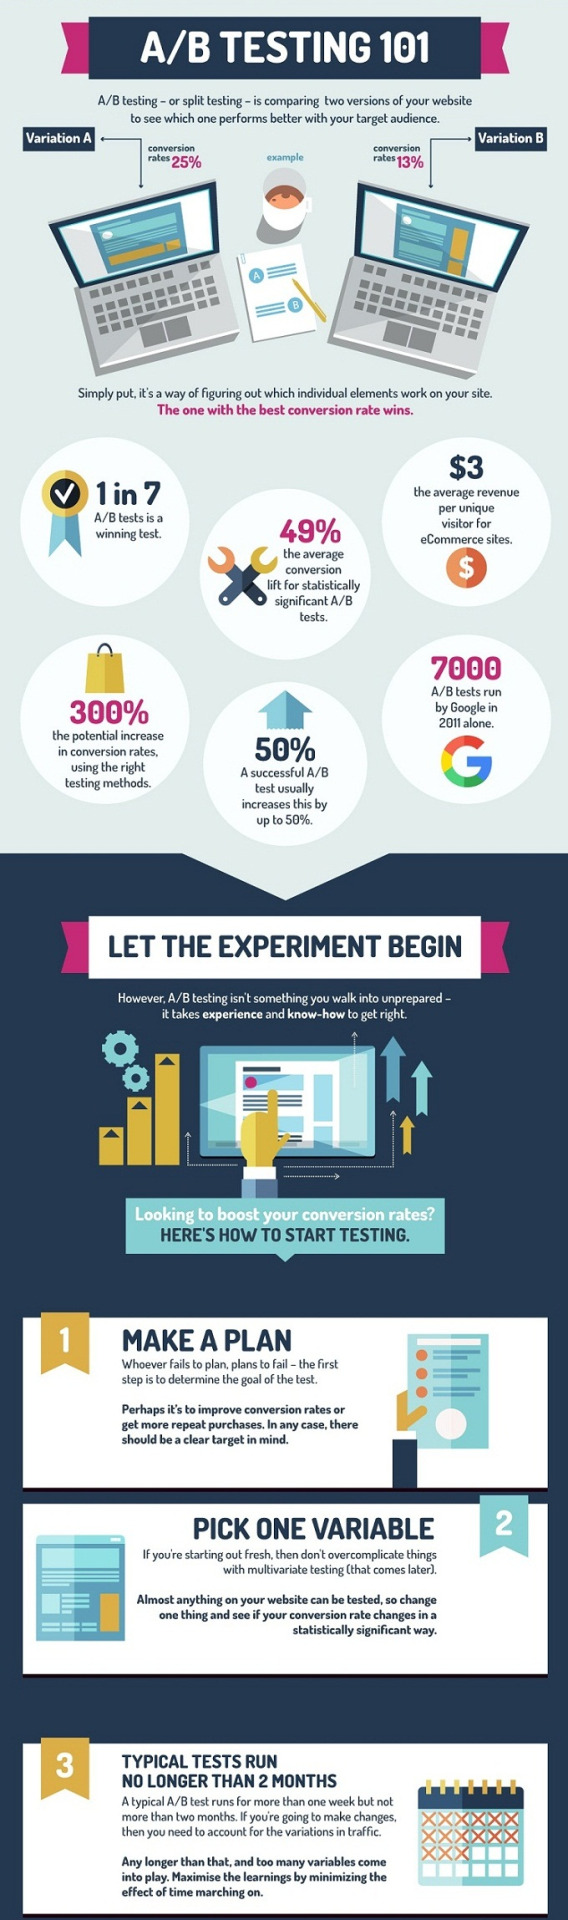 A Newbie's Guide to A/B Testing - infographic    http://www.digitalinformationworld.com/2015/10/infographic-guide-to-ab-testing.html   Knowing what does and doesn't work for your website can be what makes your site a success or a fail so it's essential that you know what effect any changes you make have on your visitors.  The latest infographic from   +  Visual Website Optimizer  , have looked at the method of A/B testing and what any newbies to the testing scene need to know before they conduct their own website tests.  A/B testing is the method of having two versions of your website online at the same time and dividing your live traffic between the two sites. One version of your site will be the normal as-it-is version whilst the second will be the version where your tweaks have been made. By dividing your traffic, you can see how viewers respond to the changes before you put them into place.  By A/B testing your website, you can potentially increase conversion rates by up to 300 percent according to VWO so it seems something that's crucially important in surviving in the cut throat digital world. Take a look at the infographic below and go forth as an A/B testing wizard.   #infographic   #digitalmarketing   #SEO   #CRO     https://plus.google.com/+AlejandroFranceschi/posts/5SwhKpMKEgG